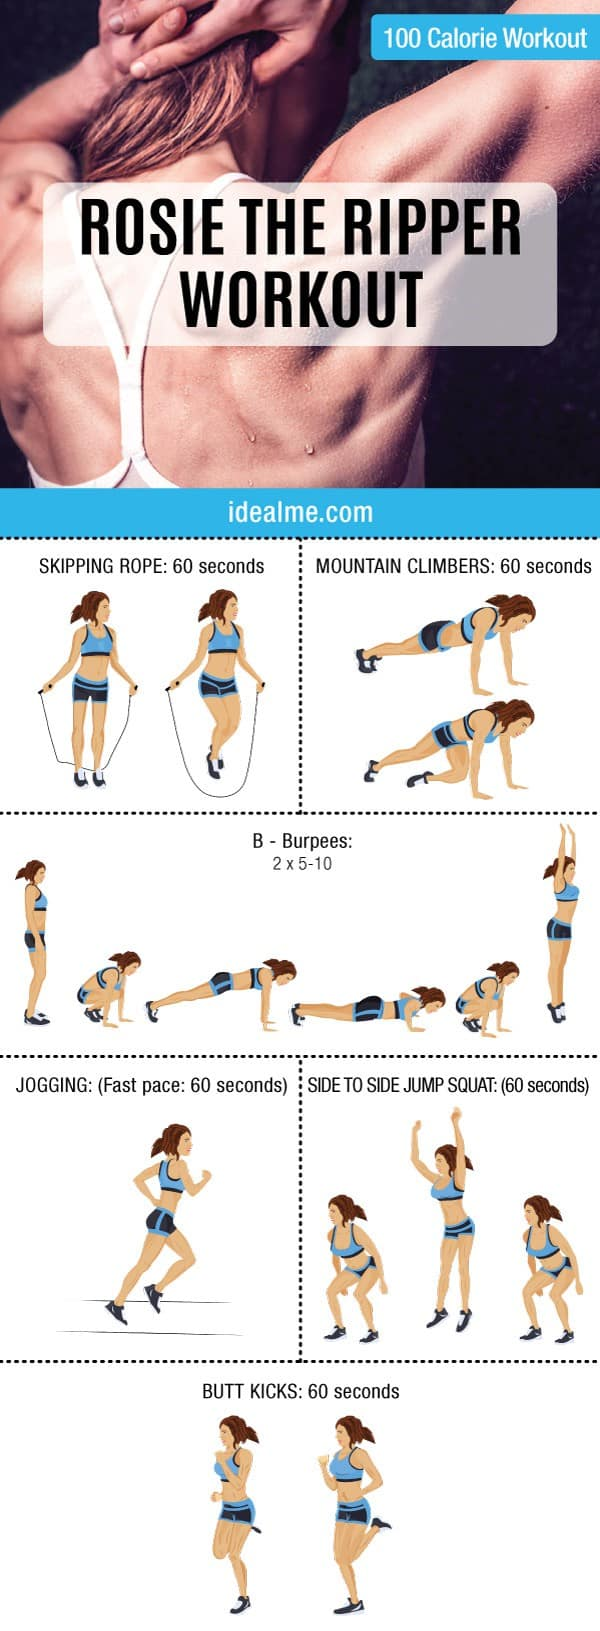 Check out this awesome 10 minute Rosie the Ripper giant set 100-calorie workout. Giant sets are great for people looking to burn extra body fat in a short amount of time.